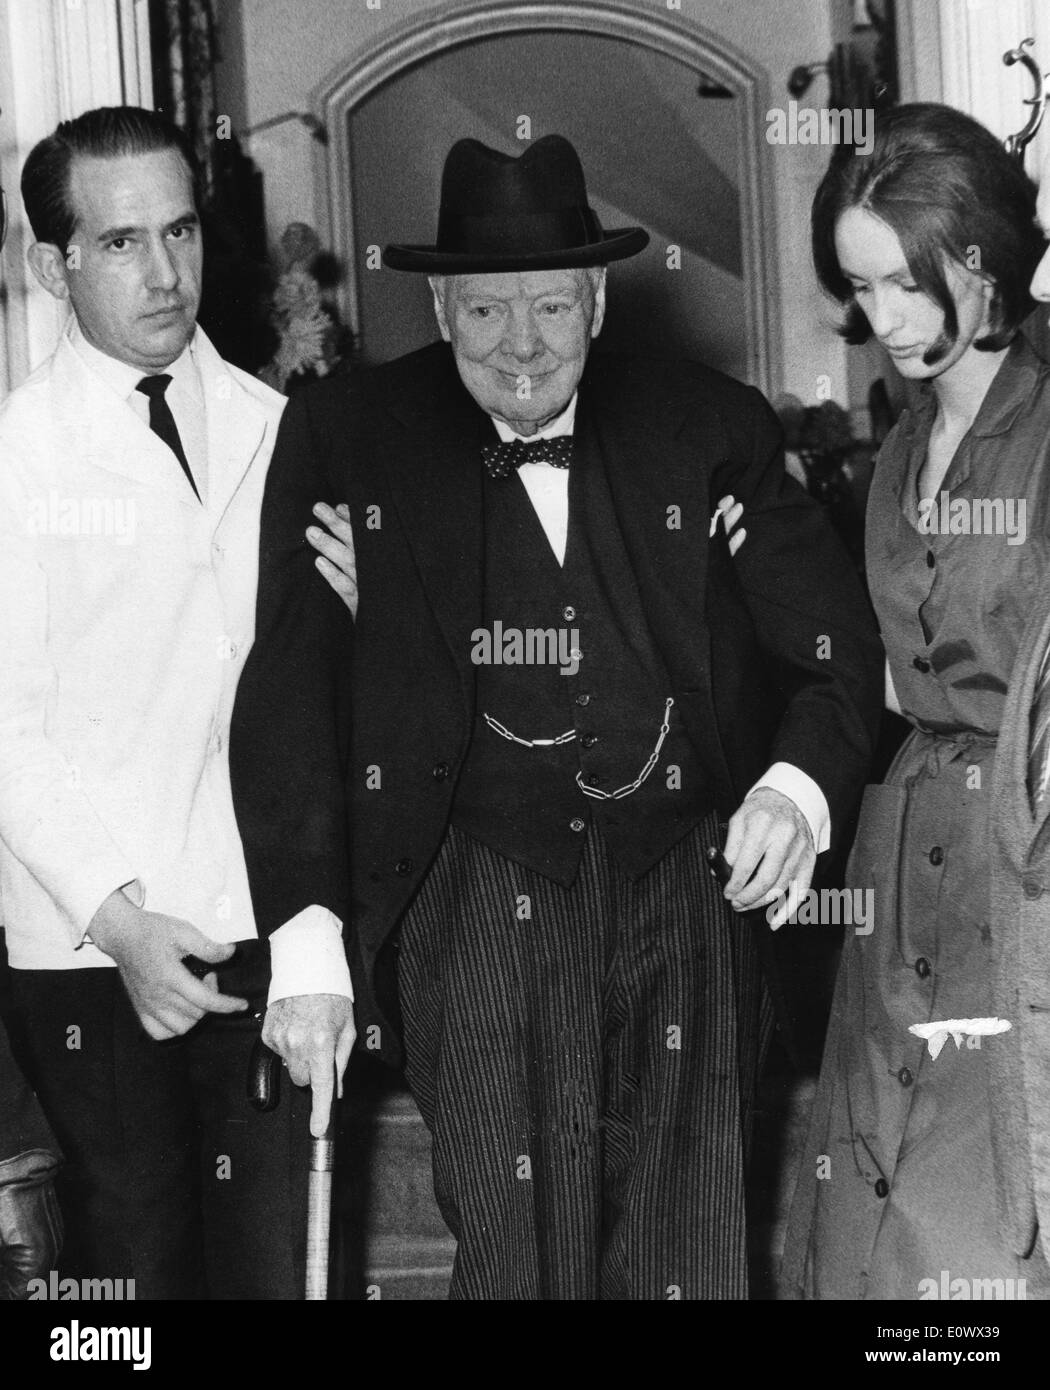 Ultima Tree >> Winston Churchill visits the House of Commons one last time Stock Photo, Royalty Free Image ...